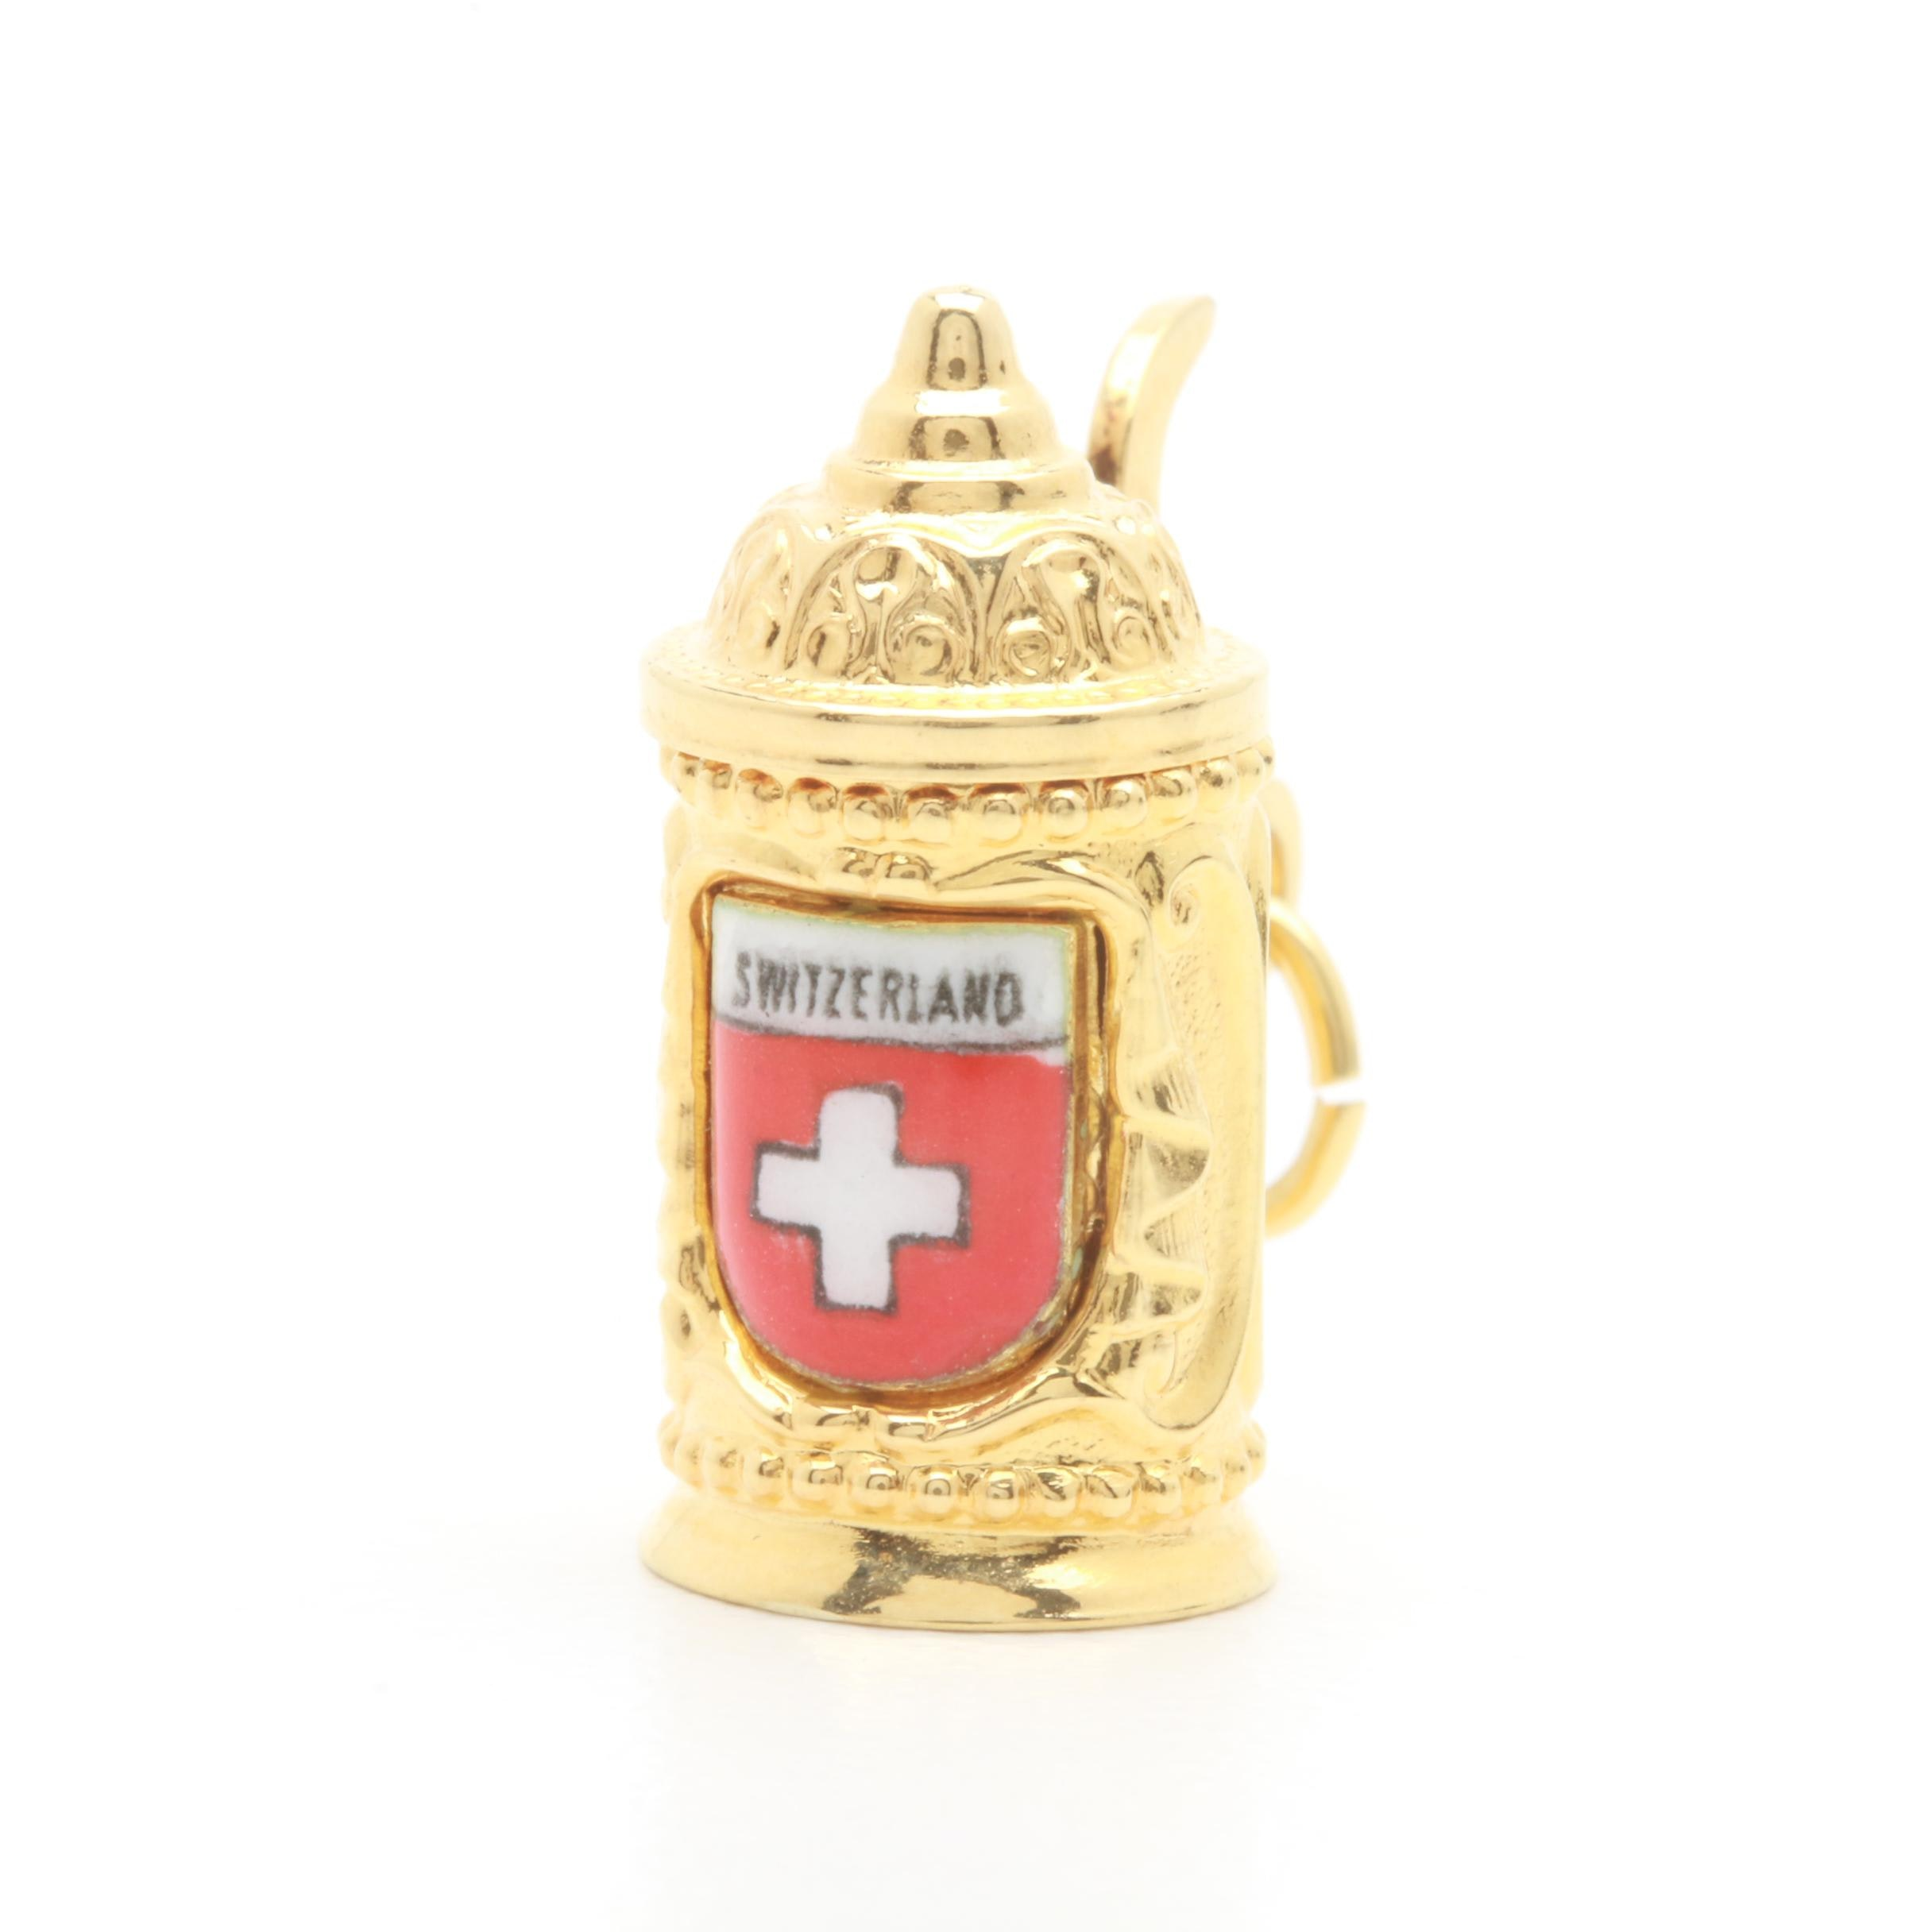 14K Yellow Gold and Enamel Stein Charm